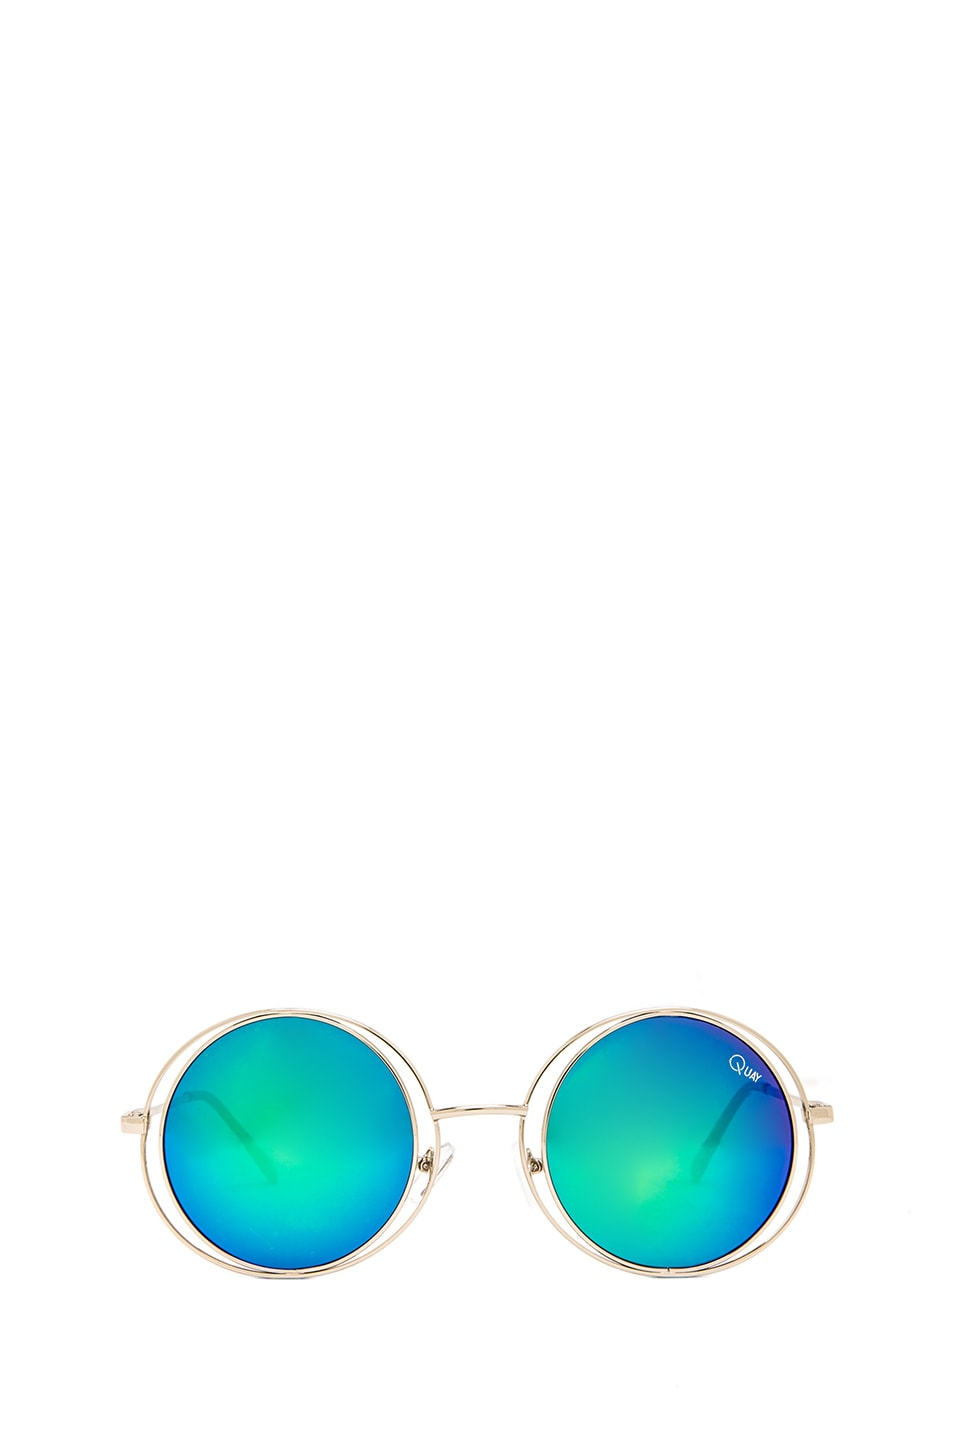 Quay Cherish Sunglasses in Silver Green